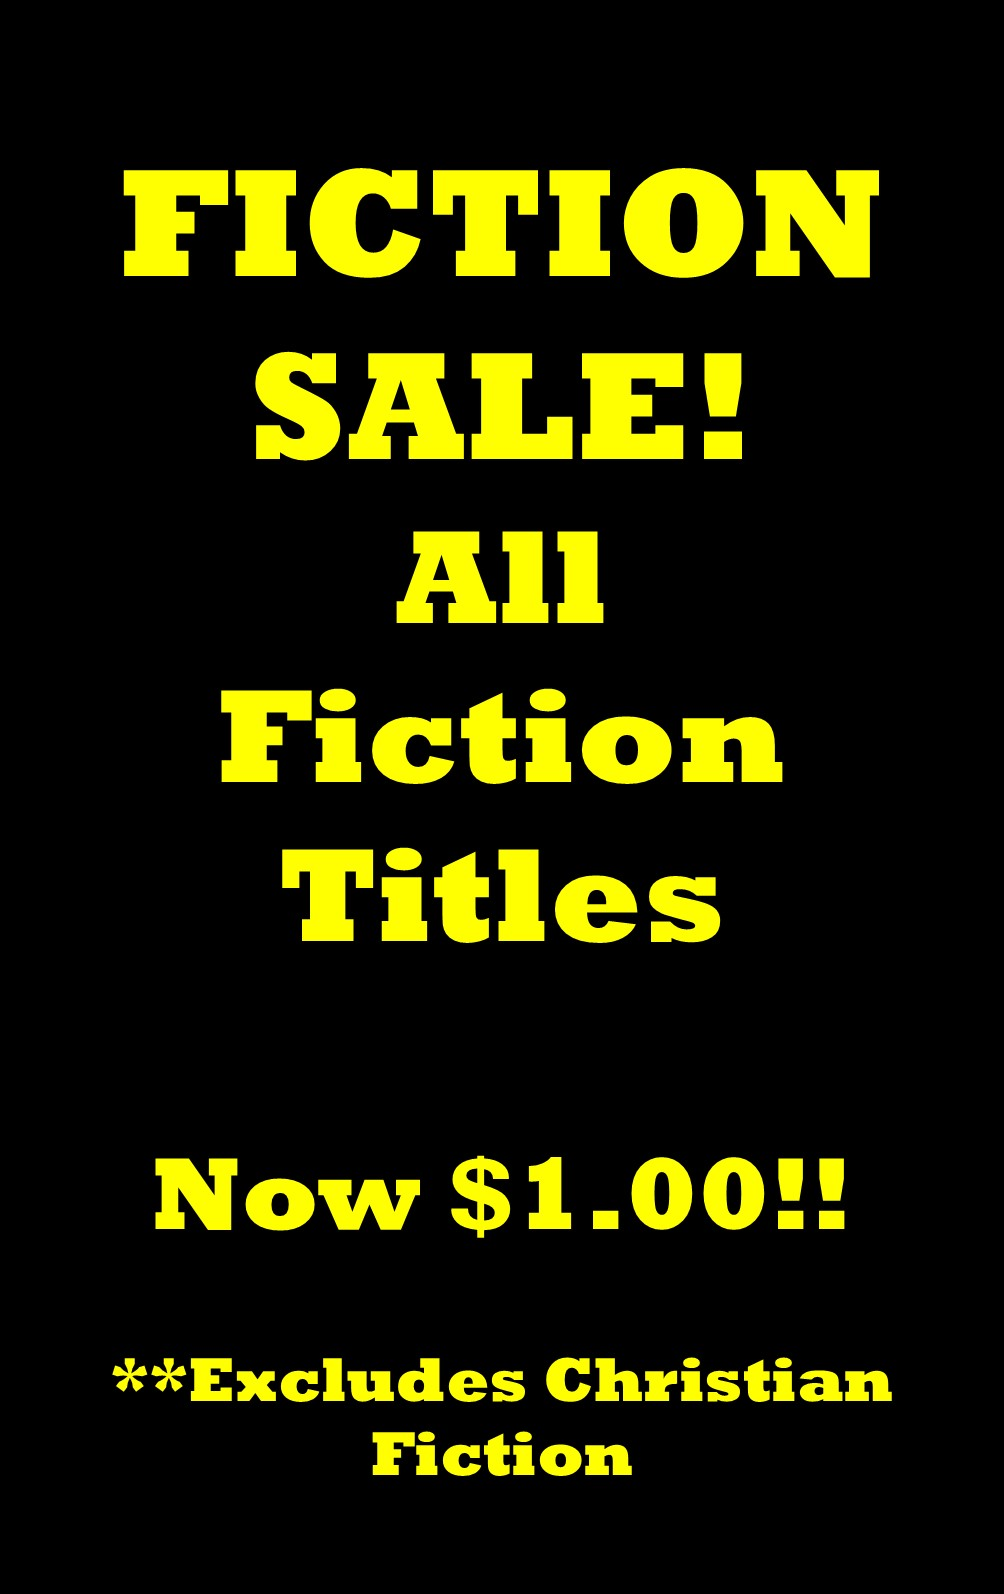 Fiction sale black